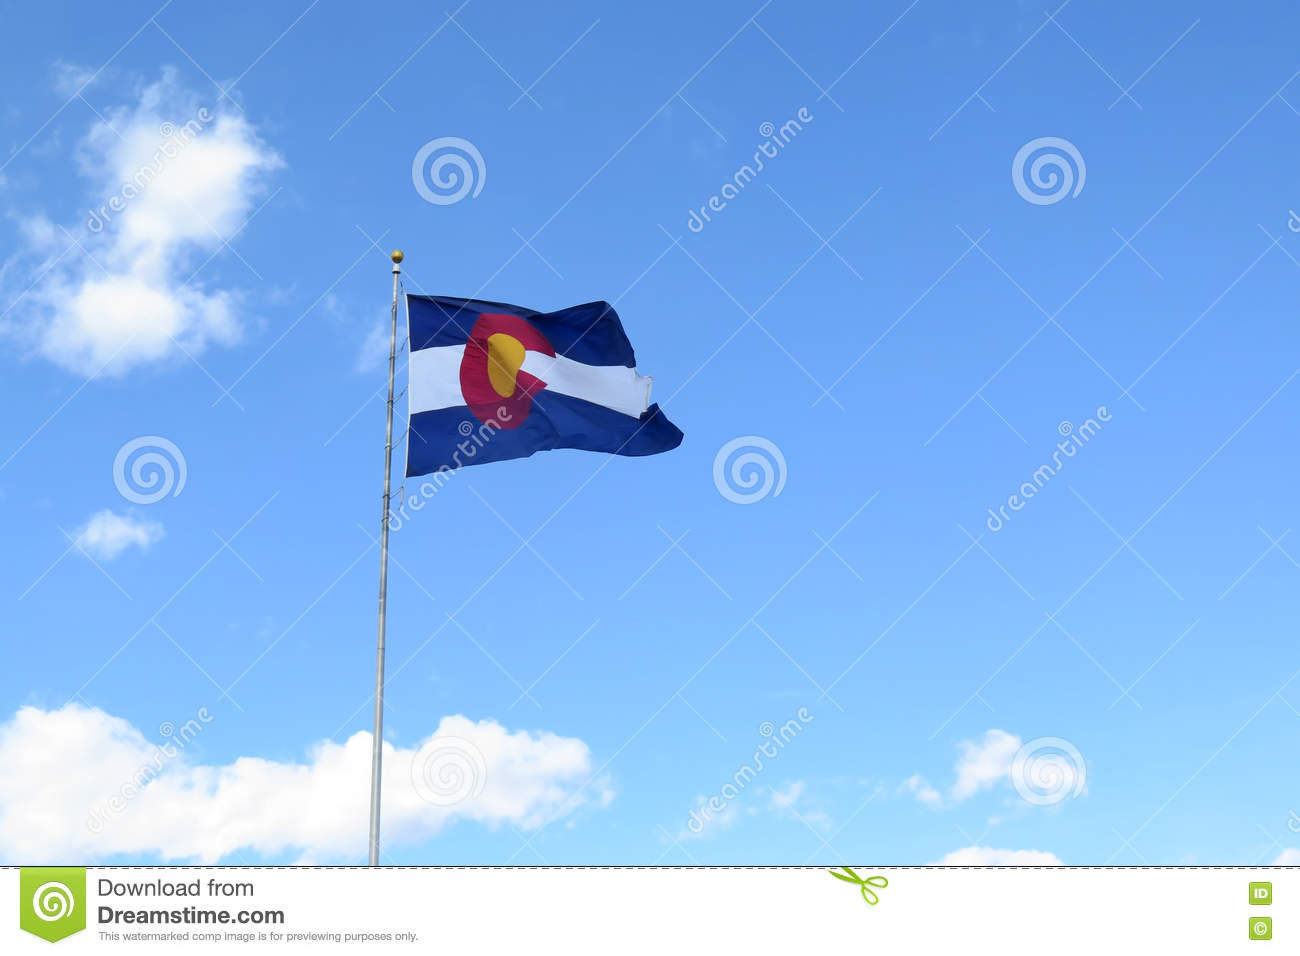 Colorado Flag waving in the wind against a blue cloudy sky